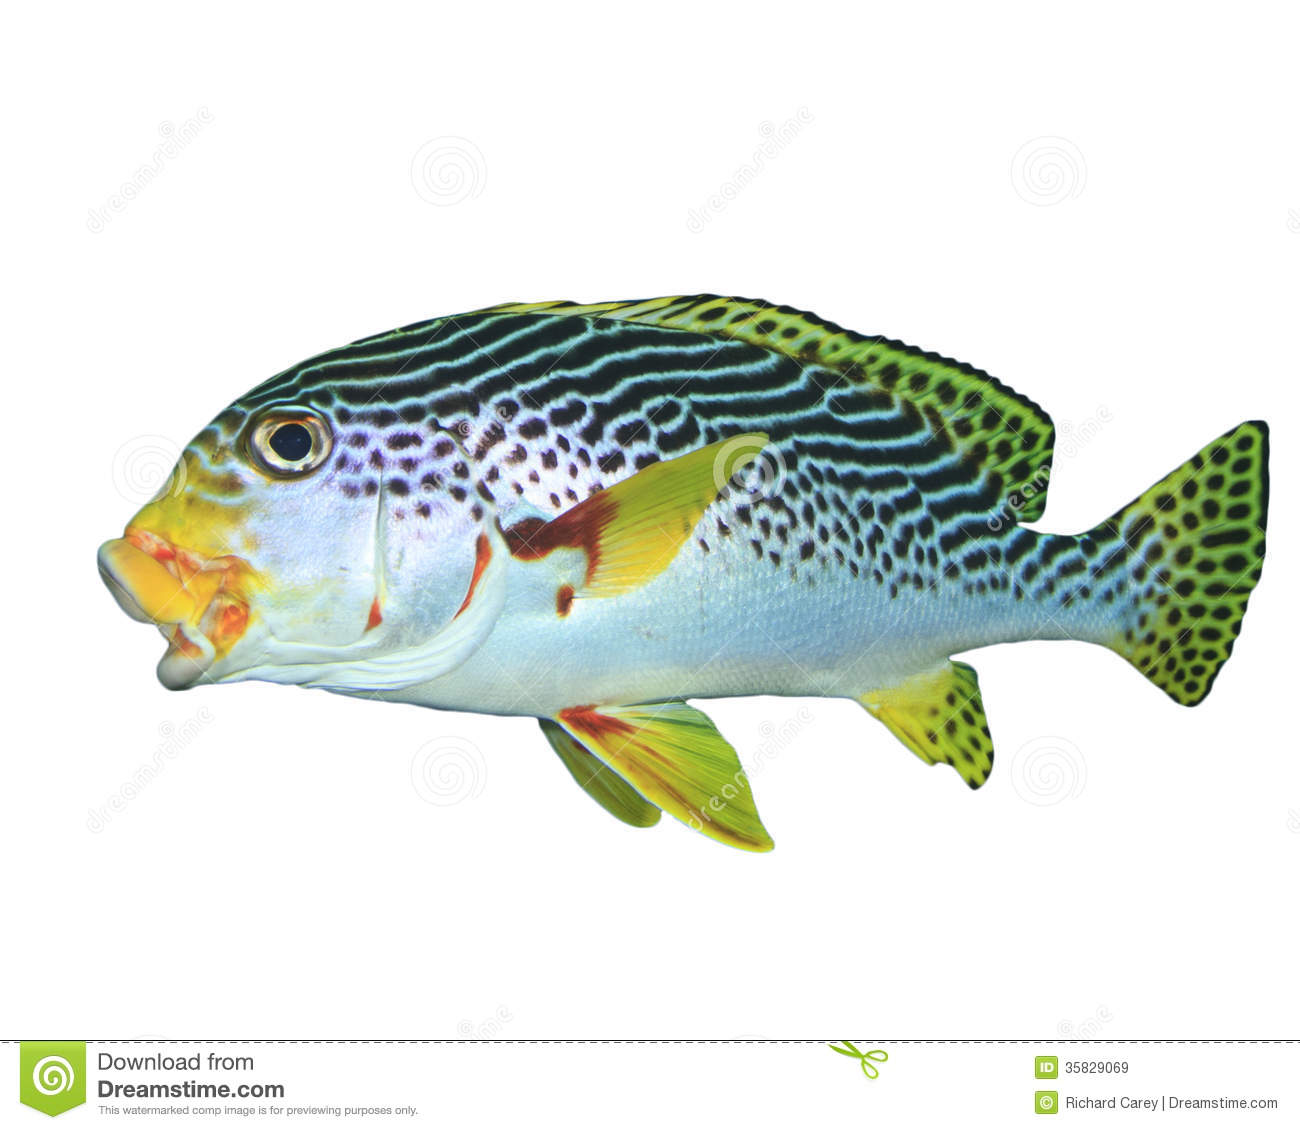 Oriental sweetlips fish isolated on white stock image for Sweet lips fish